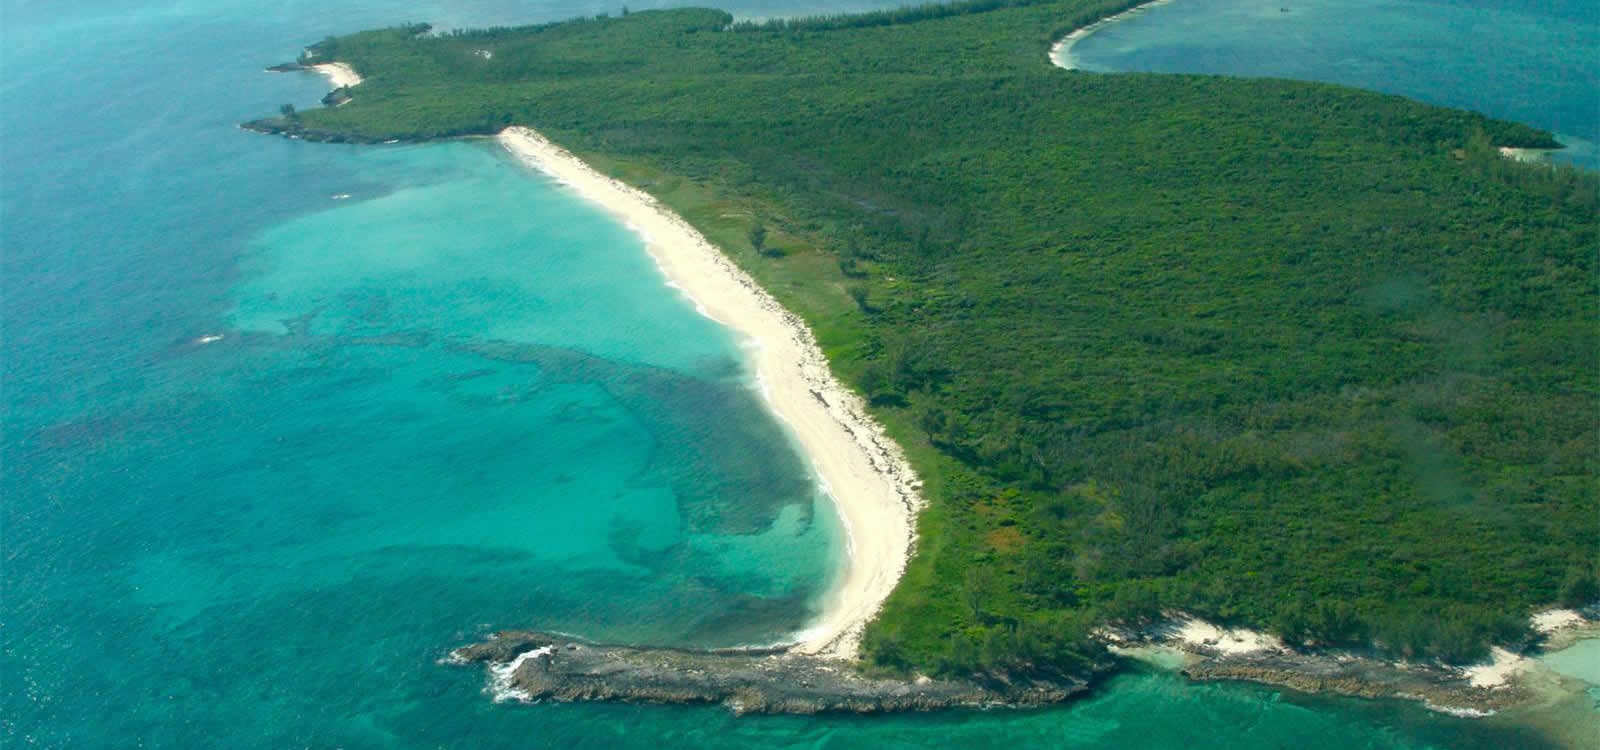 294 Acre Private Island for Sale, Abaco, Bahamas - 7th